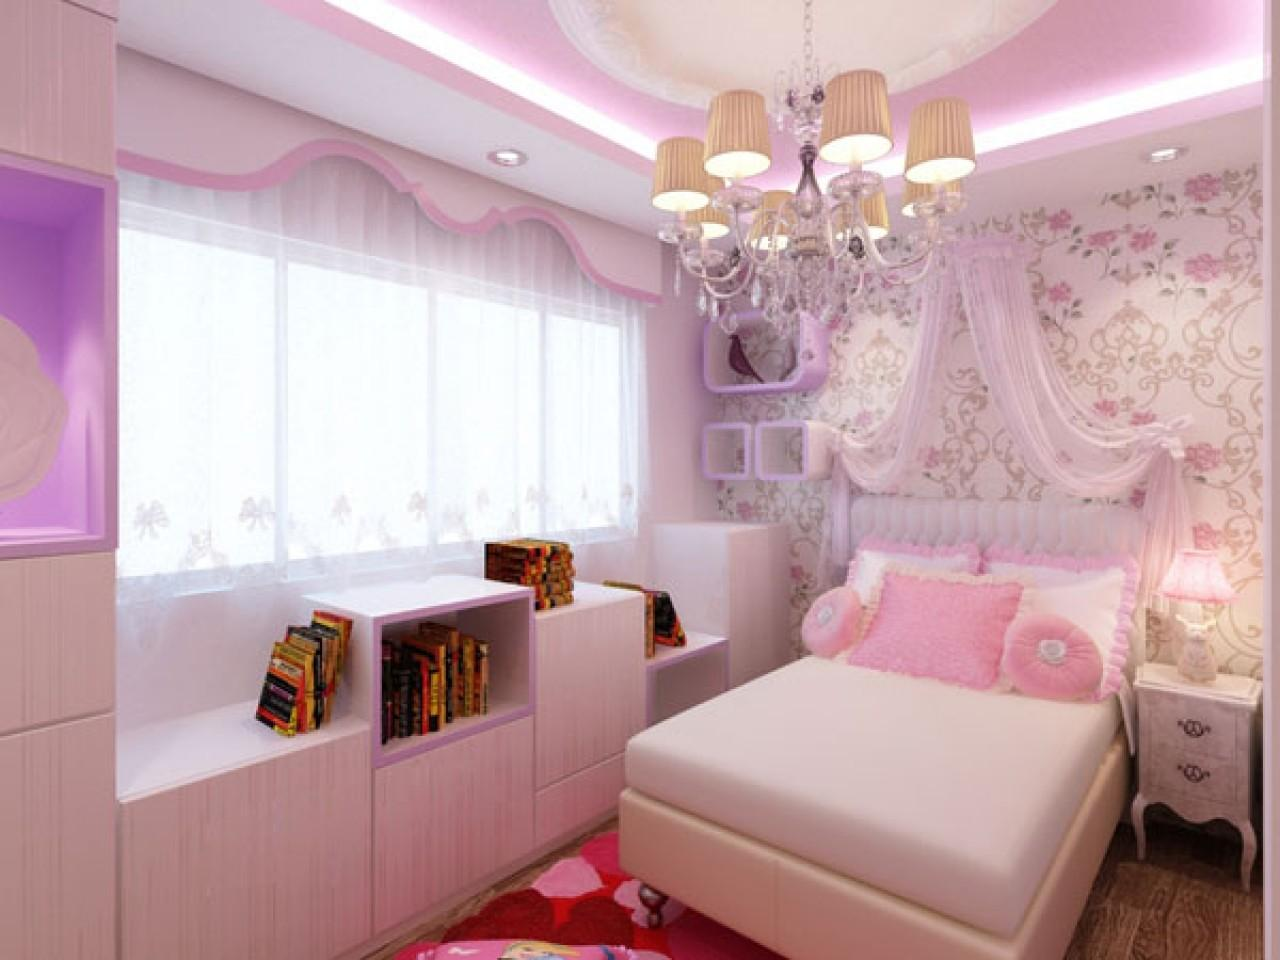 Bedroom Design Small Space Light Pink Ideas